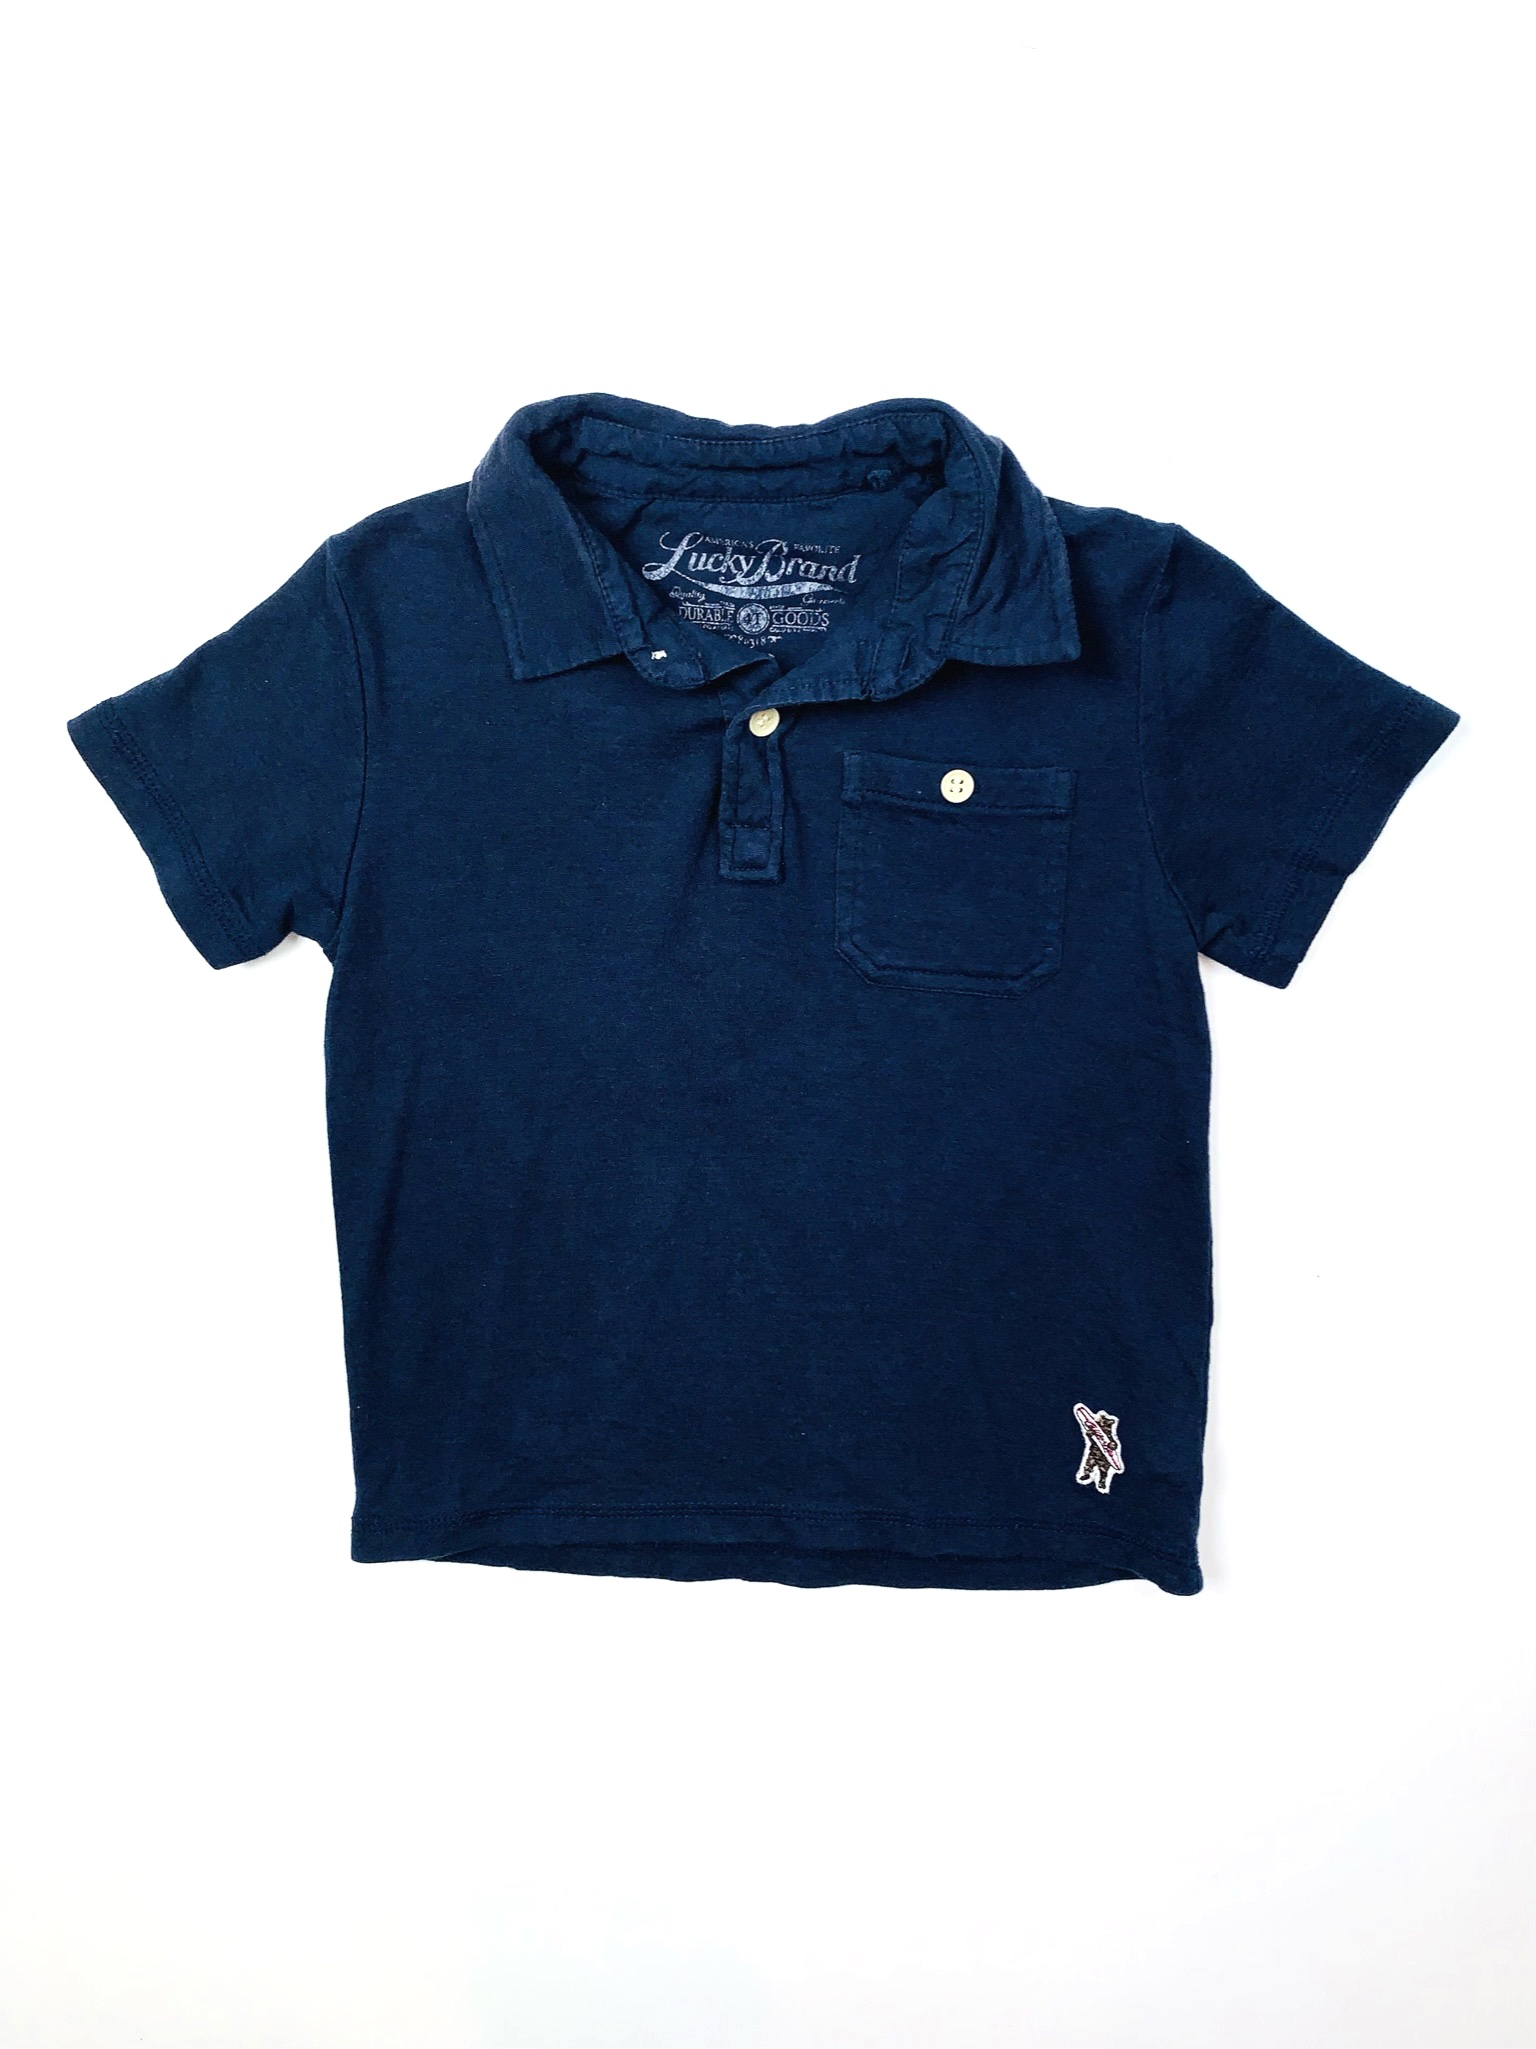 Lucky Brand 4T Tops and Tees